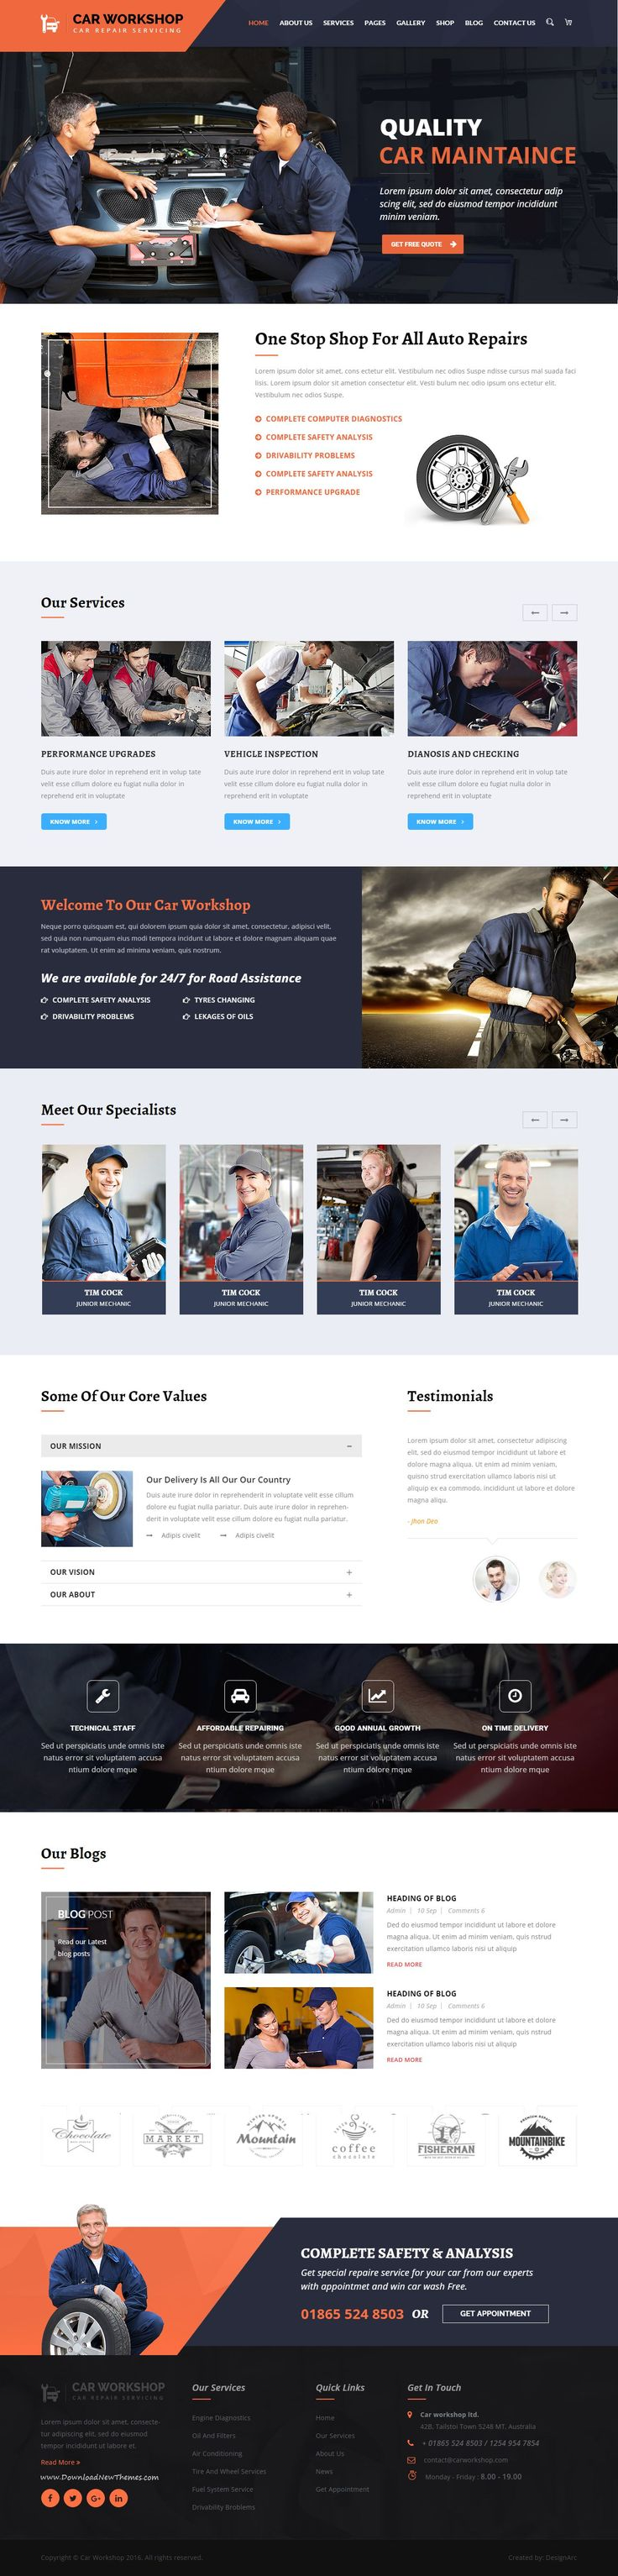 Car Workshop – Car Workshop #HTML Template is designed specially for Workshop, Auto Mechanic, #Car Repair Shops, Car Wash, Garages, Automobile Mechanical, Mechanic Workshops, Auto Painting, Auto Centers and all type of Auto Related Services. This #template comes with necessary features for your online presence like gallery, blog, testimonial, team and appointment page etc. Car Workshop can be a great choice for your online presence. #webdesign